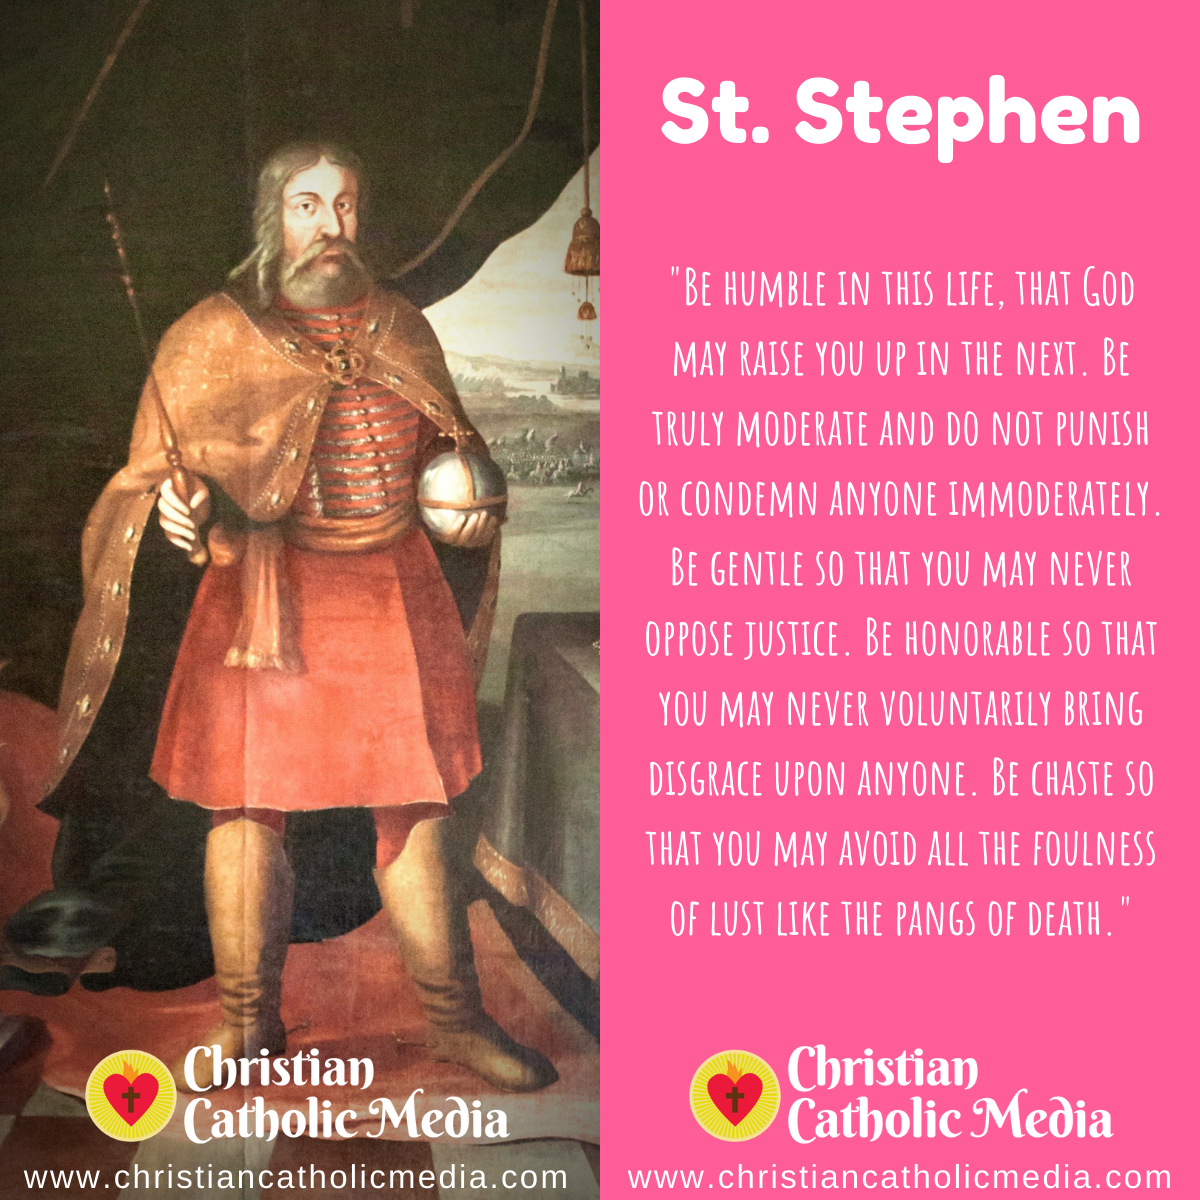 St. Stephen - Sunday August 16, 2020